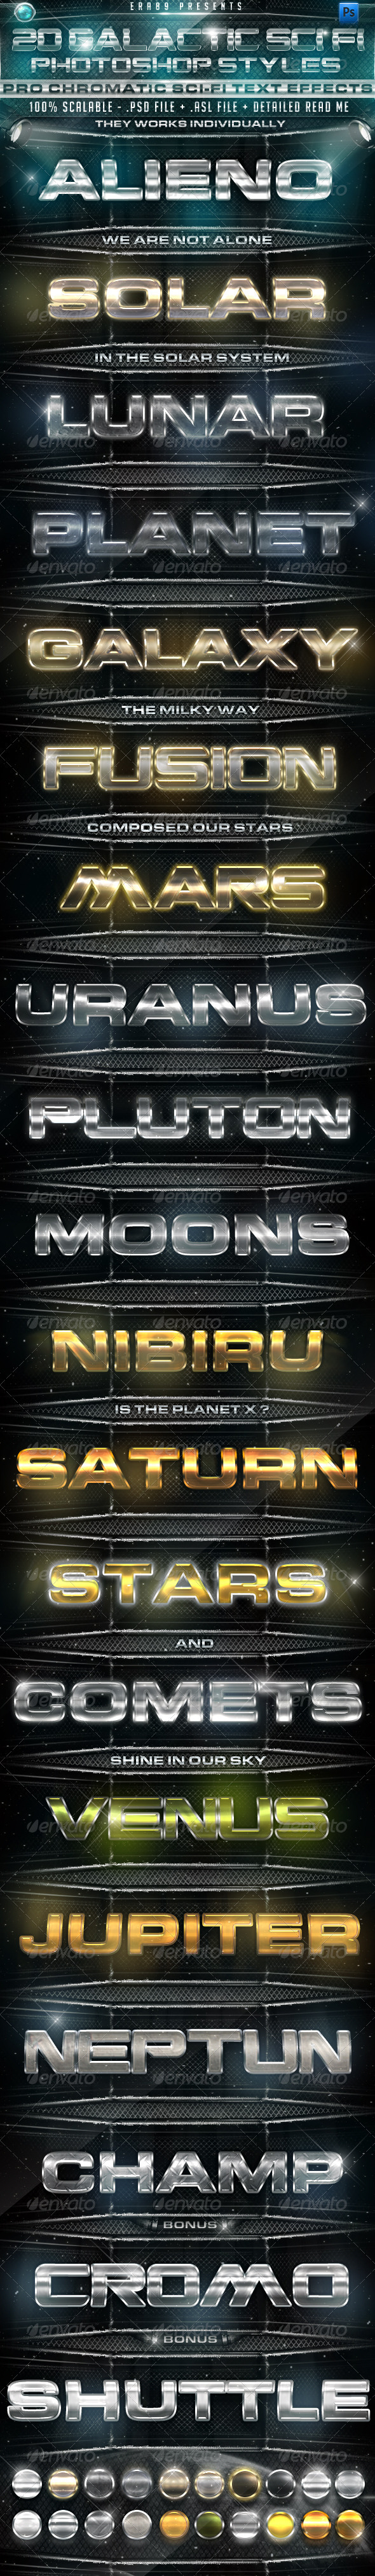 GraphicRiver 20 Galactic Sci Fi PS Styles 1133226